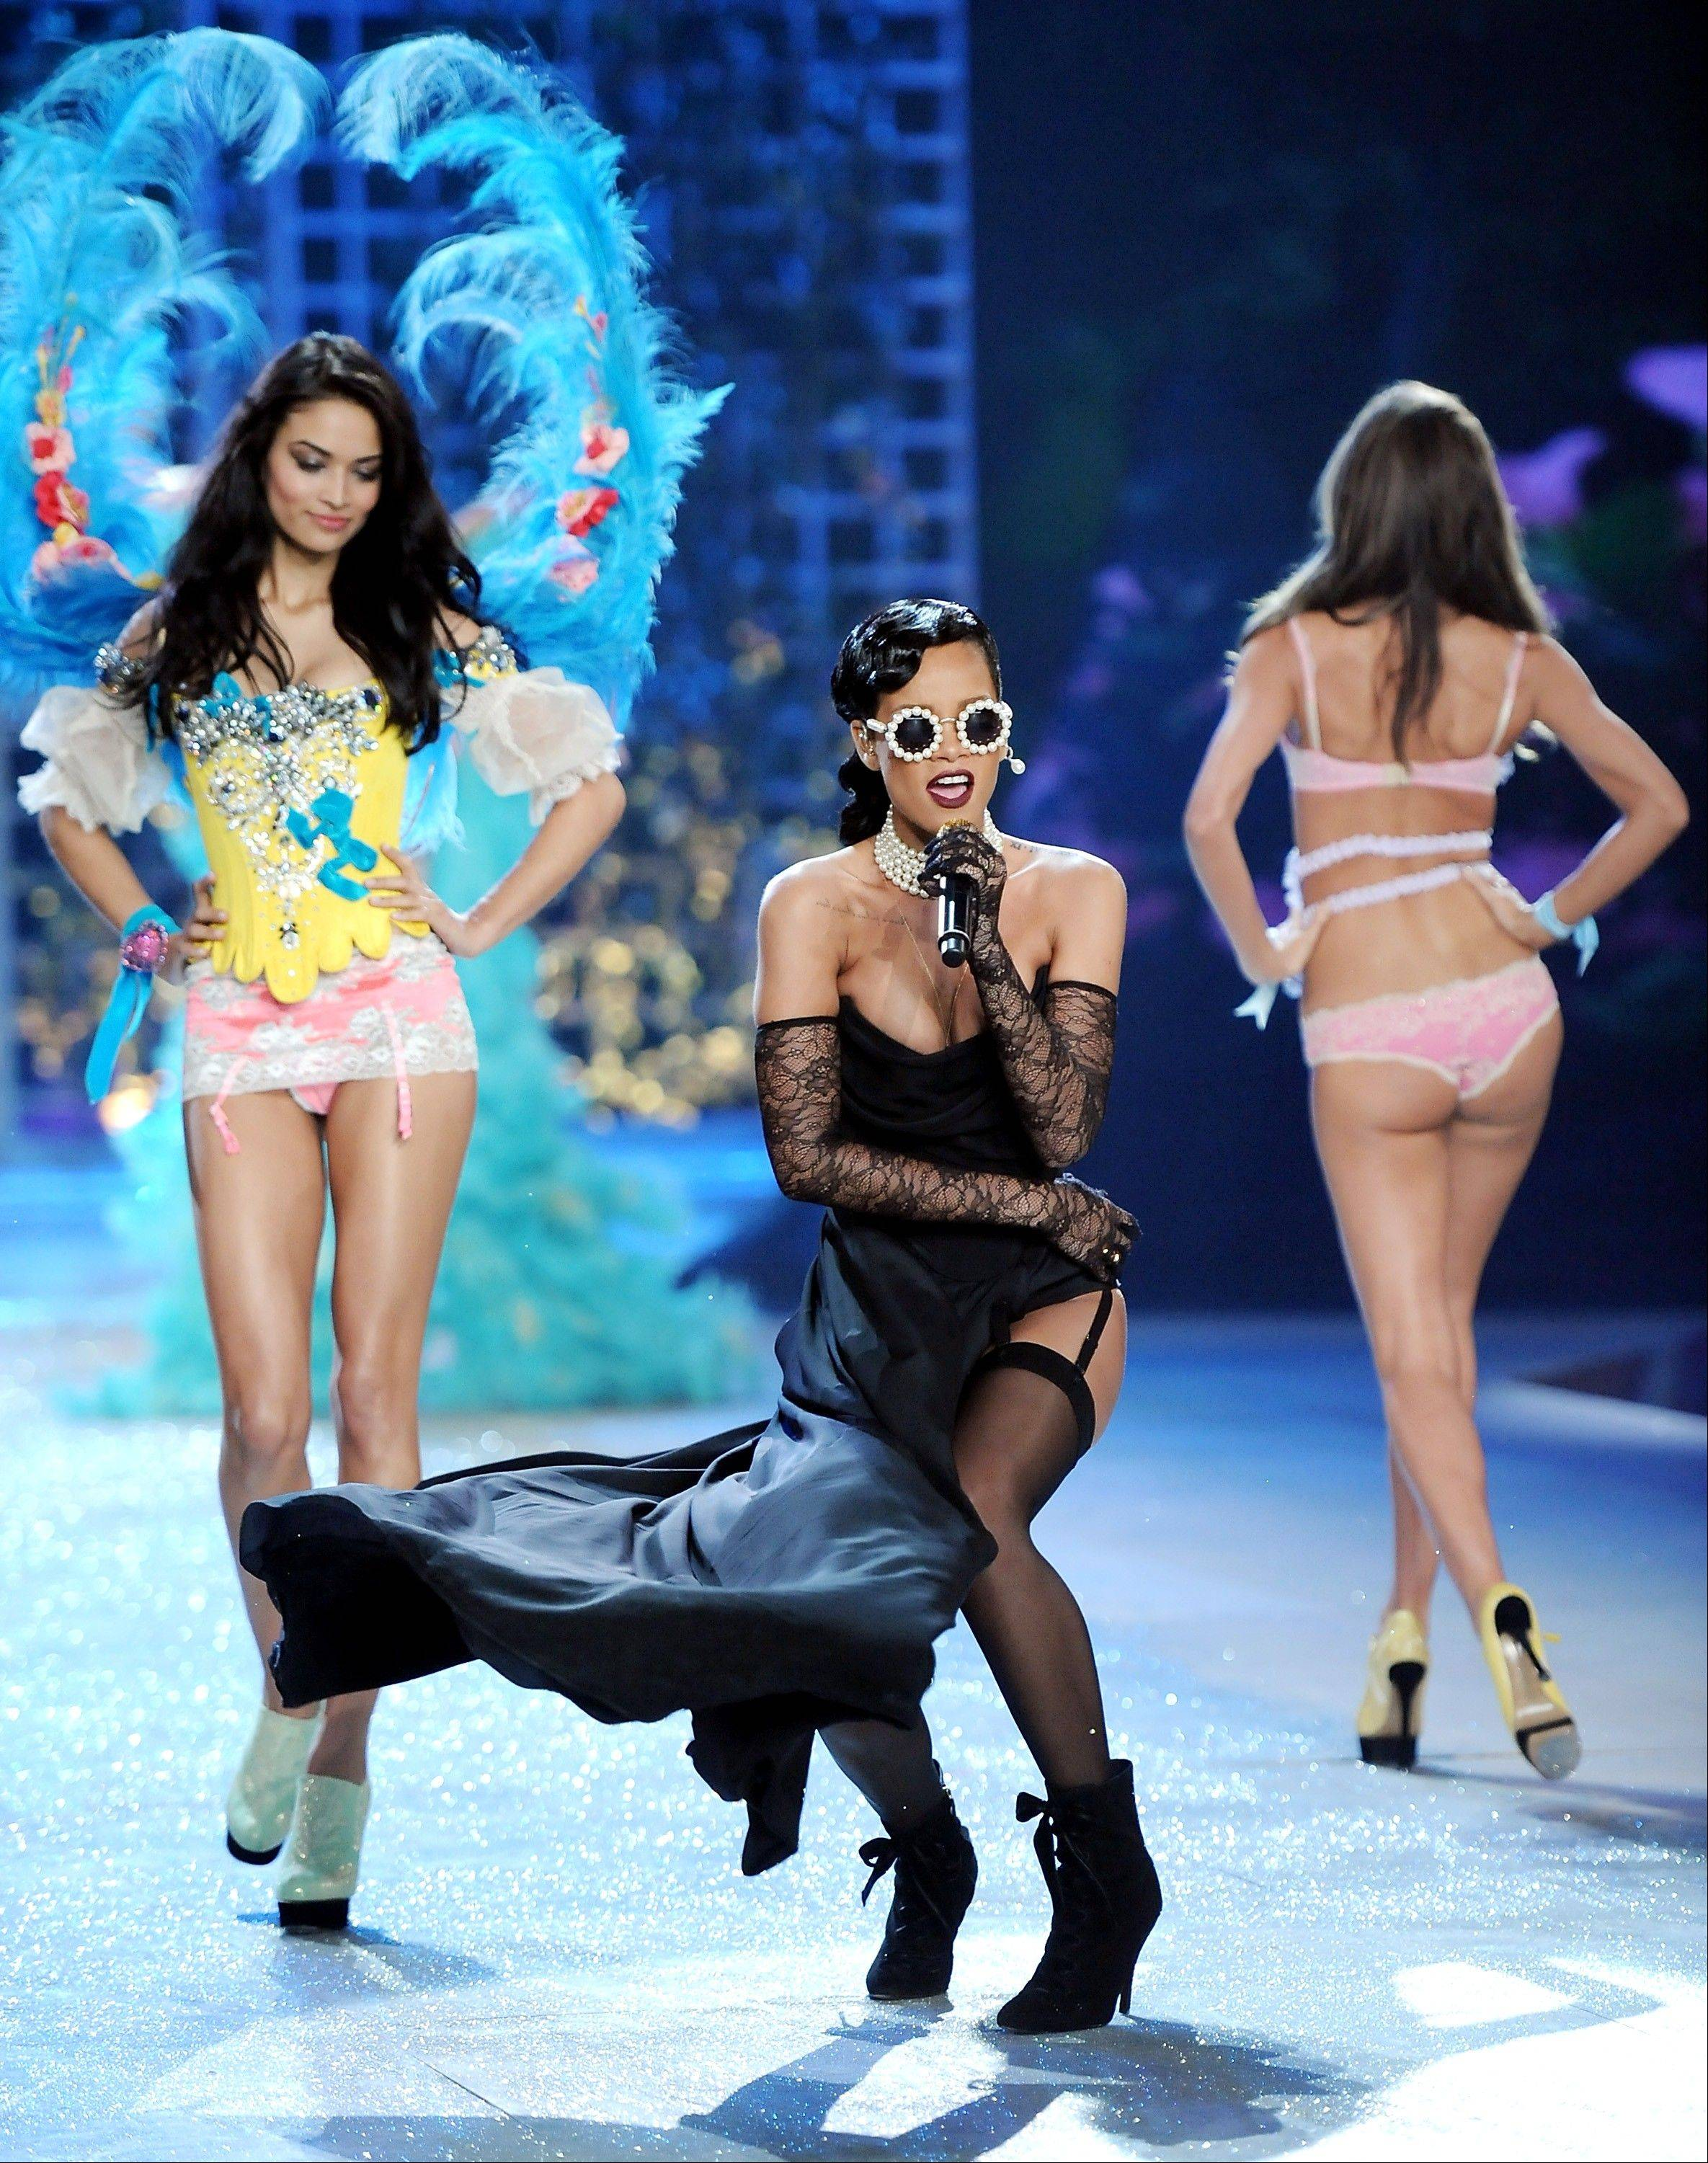 Singer Rihanna, center, performs while models walk the runway during the 2012 Victoria's Secret Fashion Show.